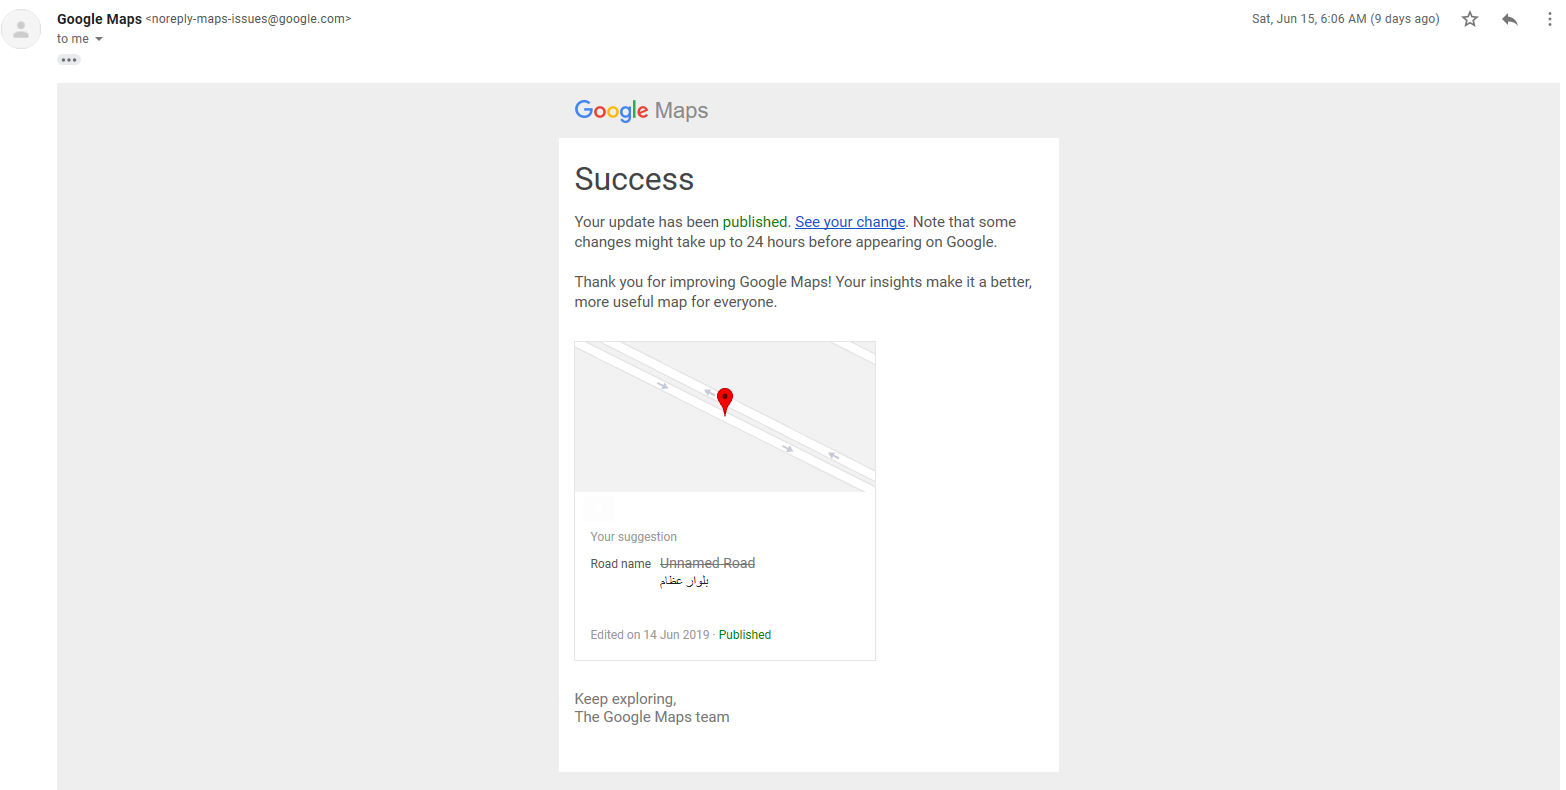 Why My Google maps Edits still remains in Pending status? - Google